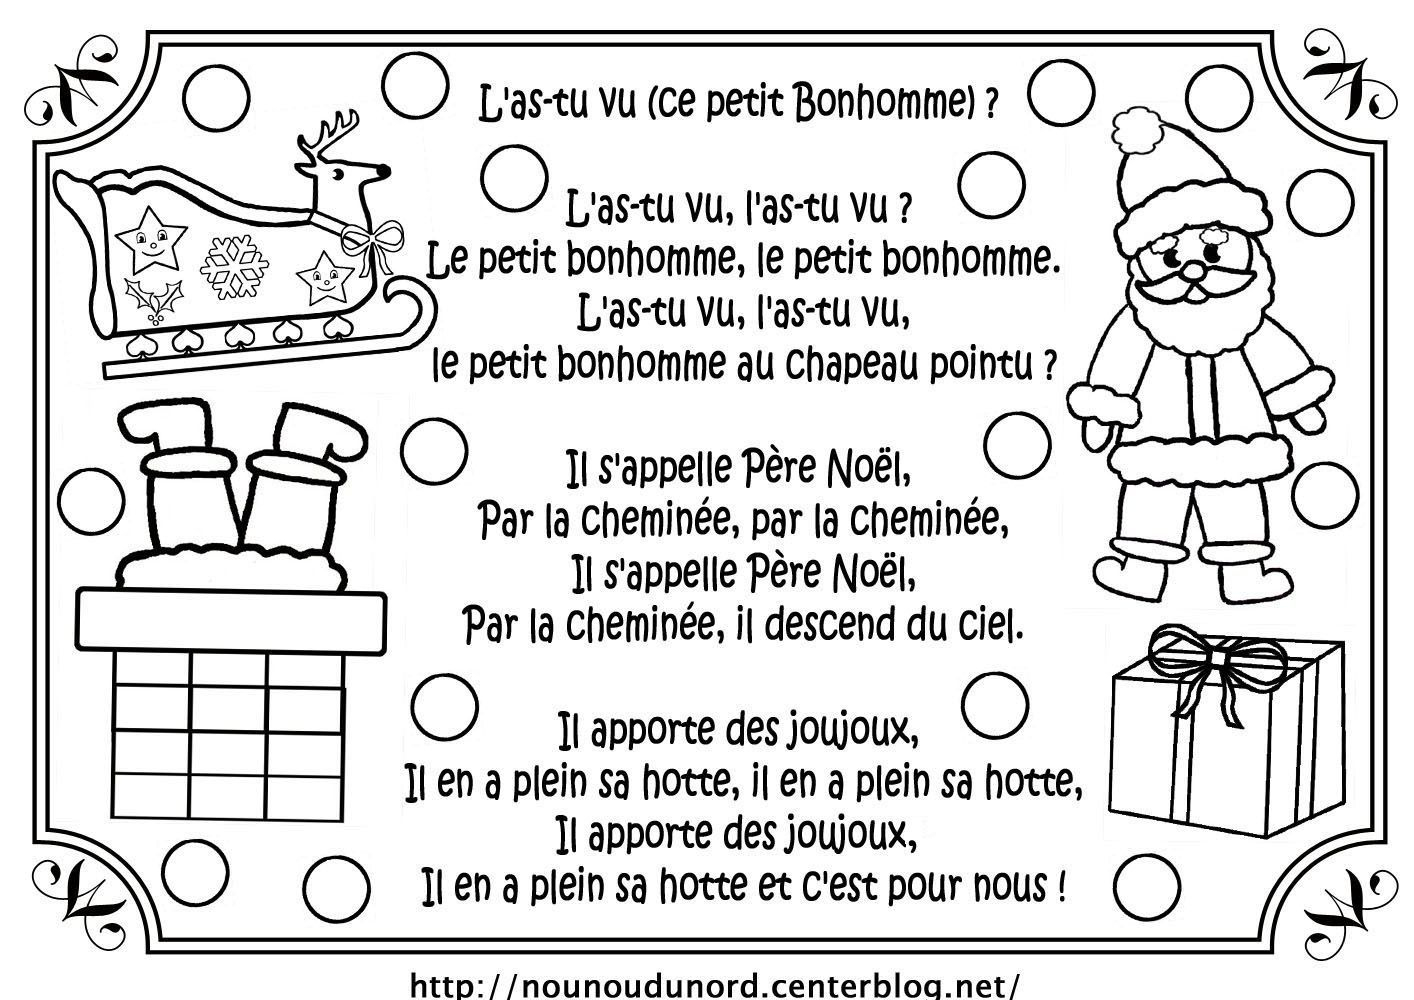 Comptine De Noël L'as-Tu Vu concernant L As Tu Vu Paroles